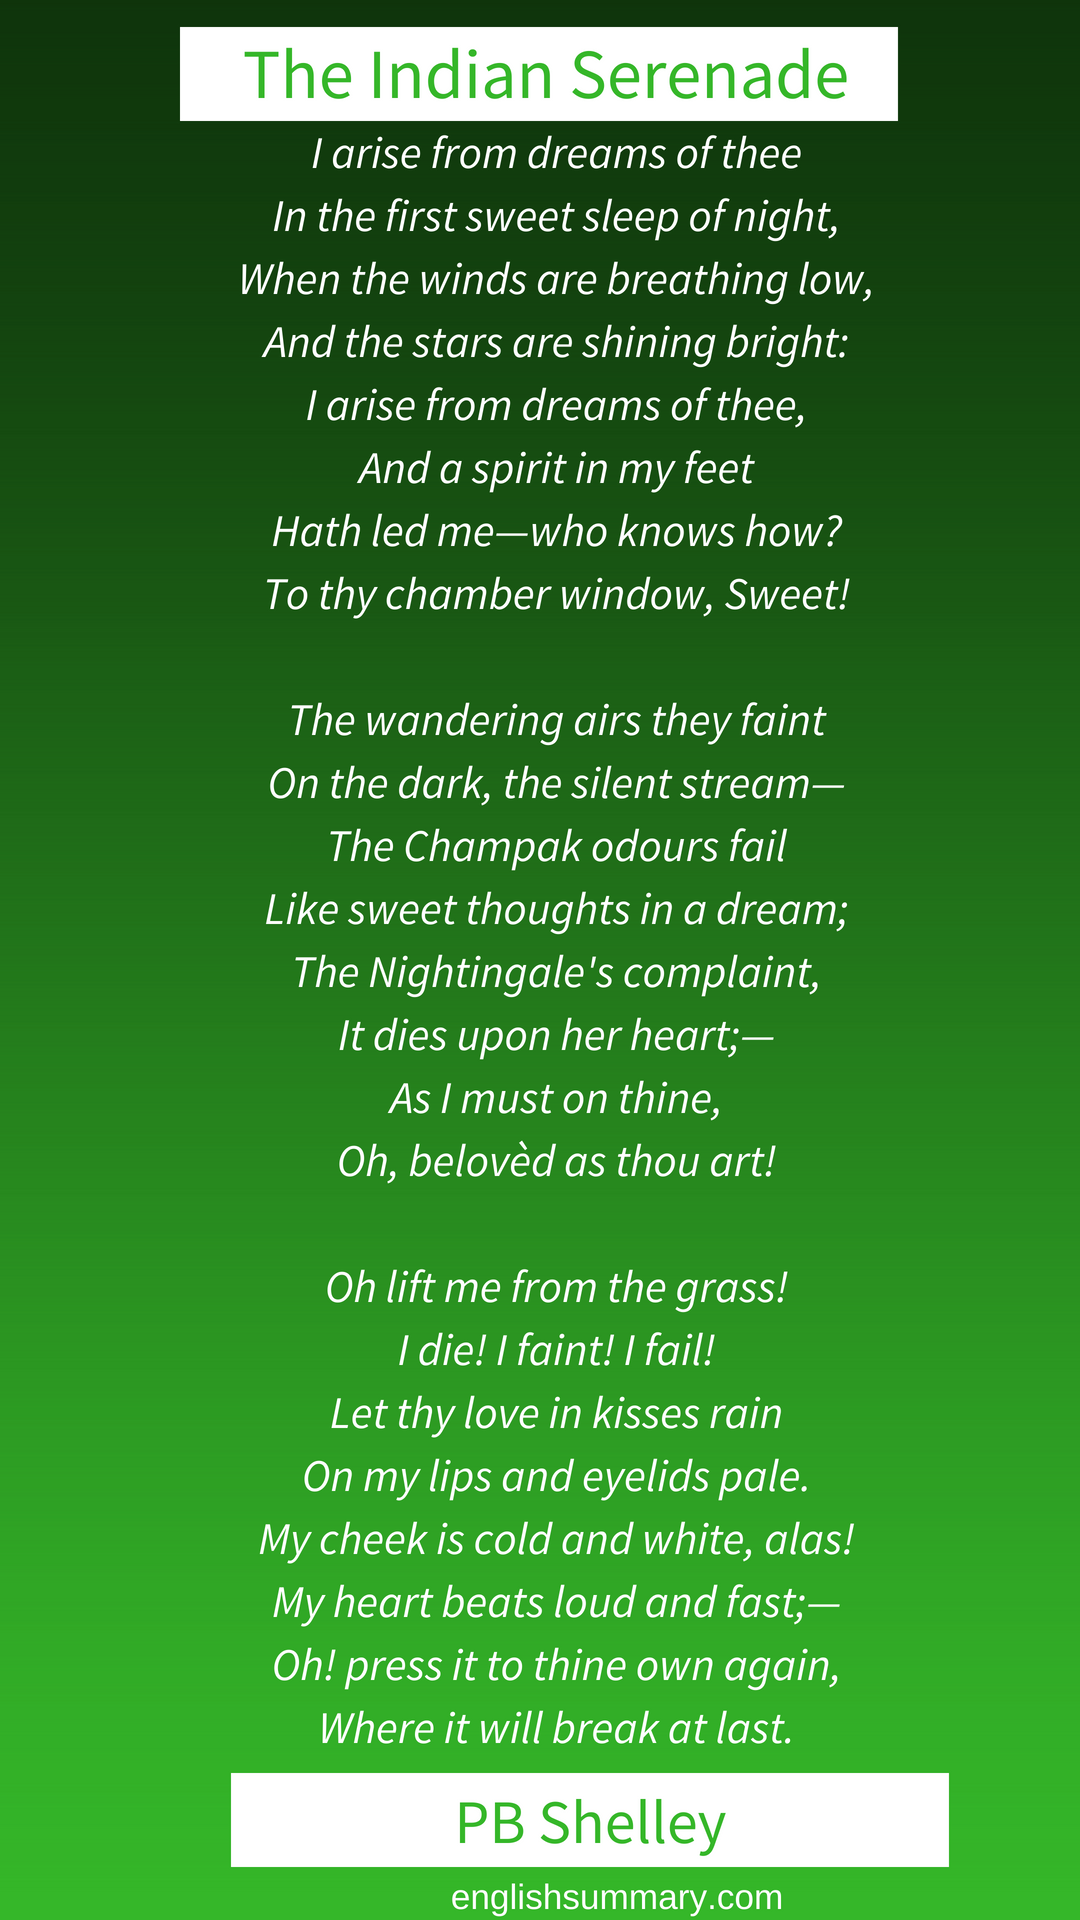 The Indian Serenade By Pb Shelley Romantic Poem Verse About Love Poems A Thing Of Beauty John Keat Theme